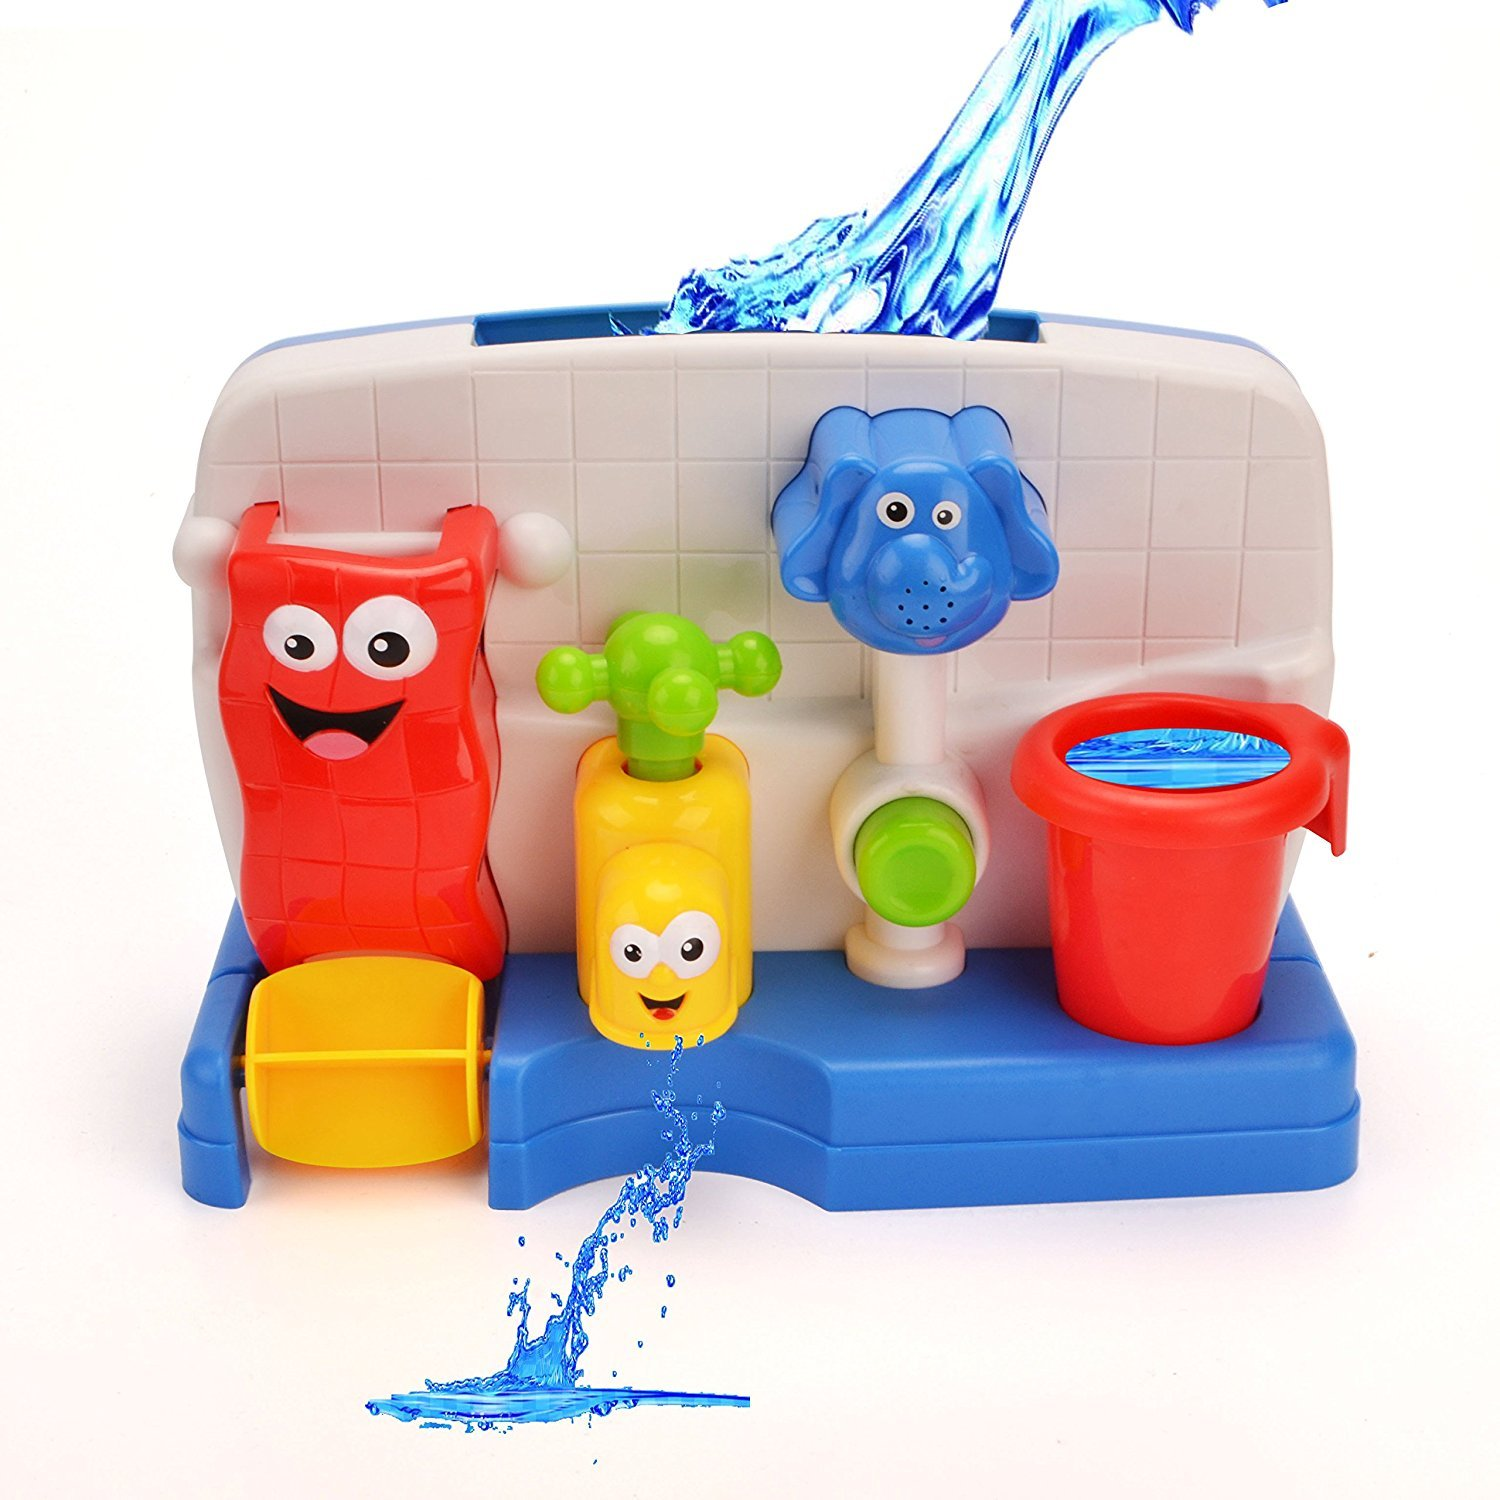 Funny Bath Toys for Boys and Girls with Water Sprinkler System -Early Education Interactive Bathroom Toys